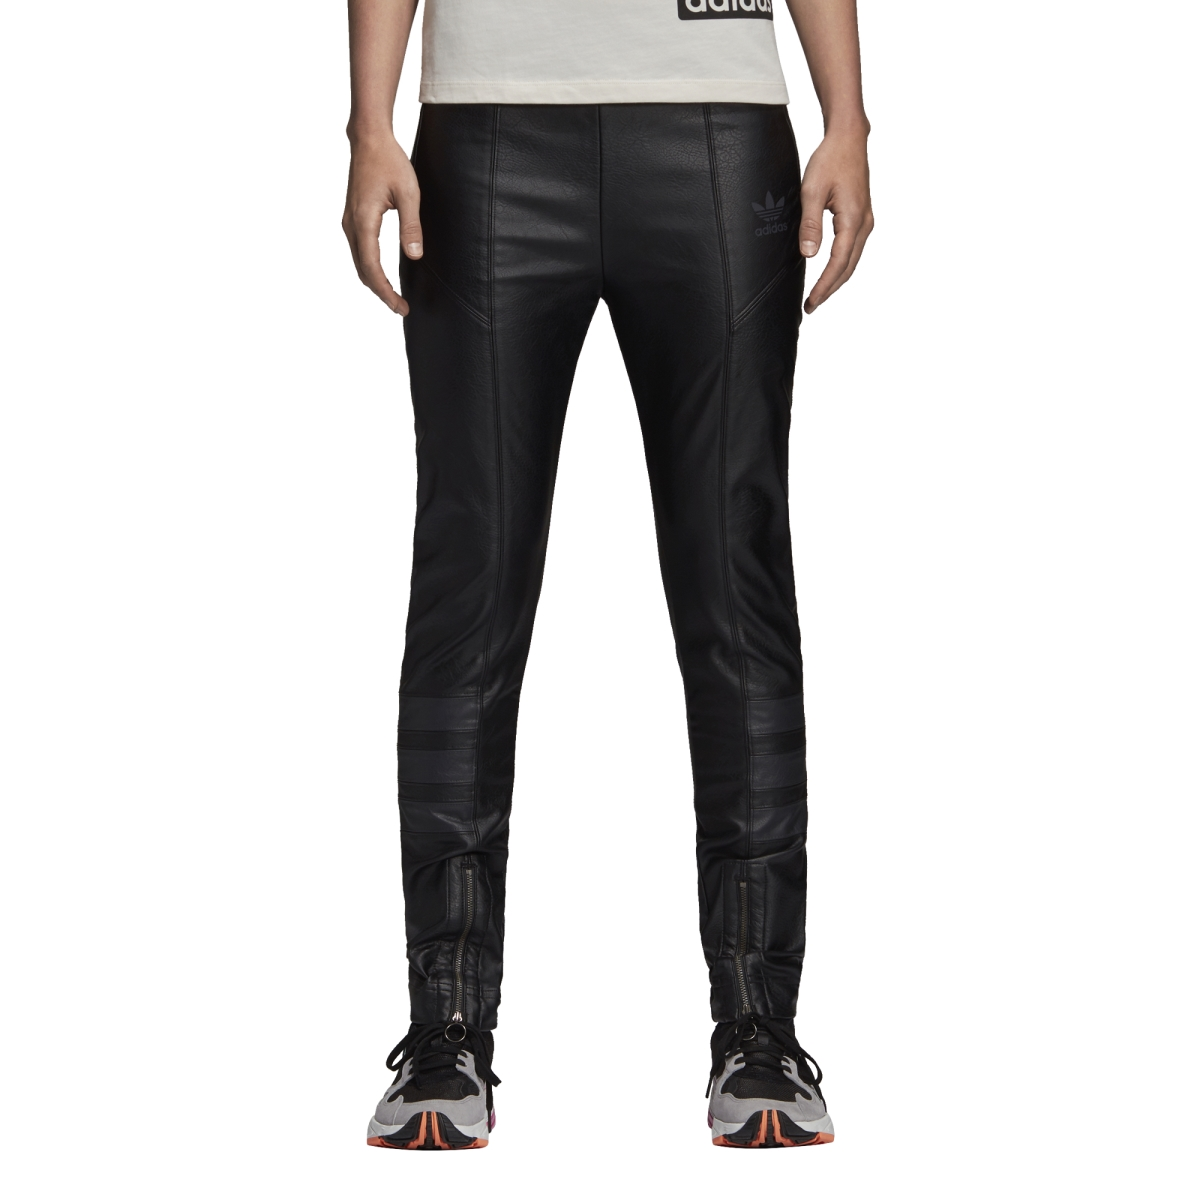 exquisite style autumn shoes provide large selection of Adidas Black Leather Pants Track Pants | Freesneak